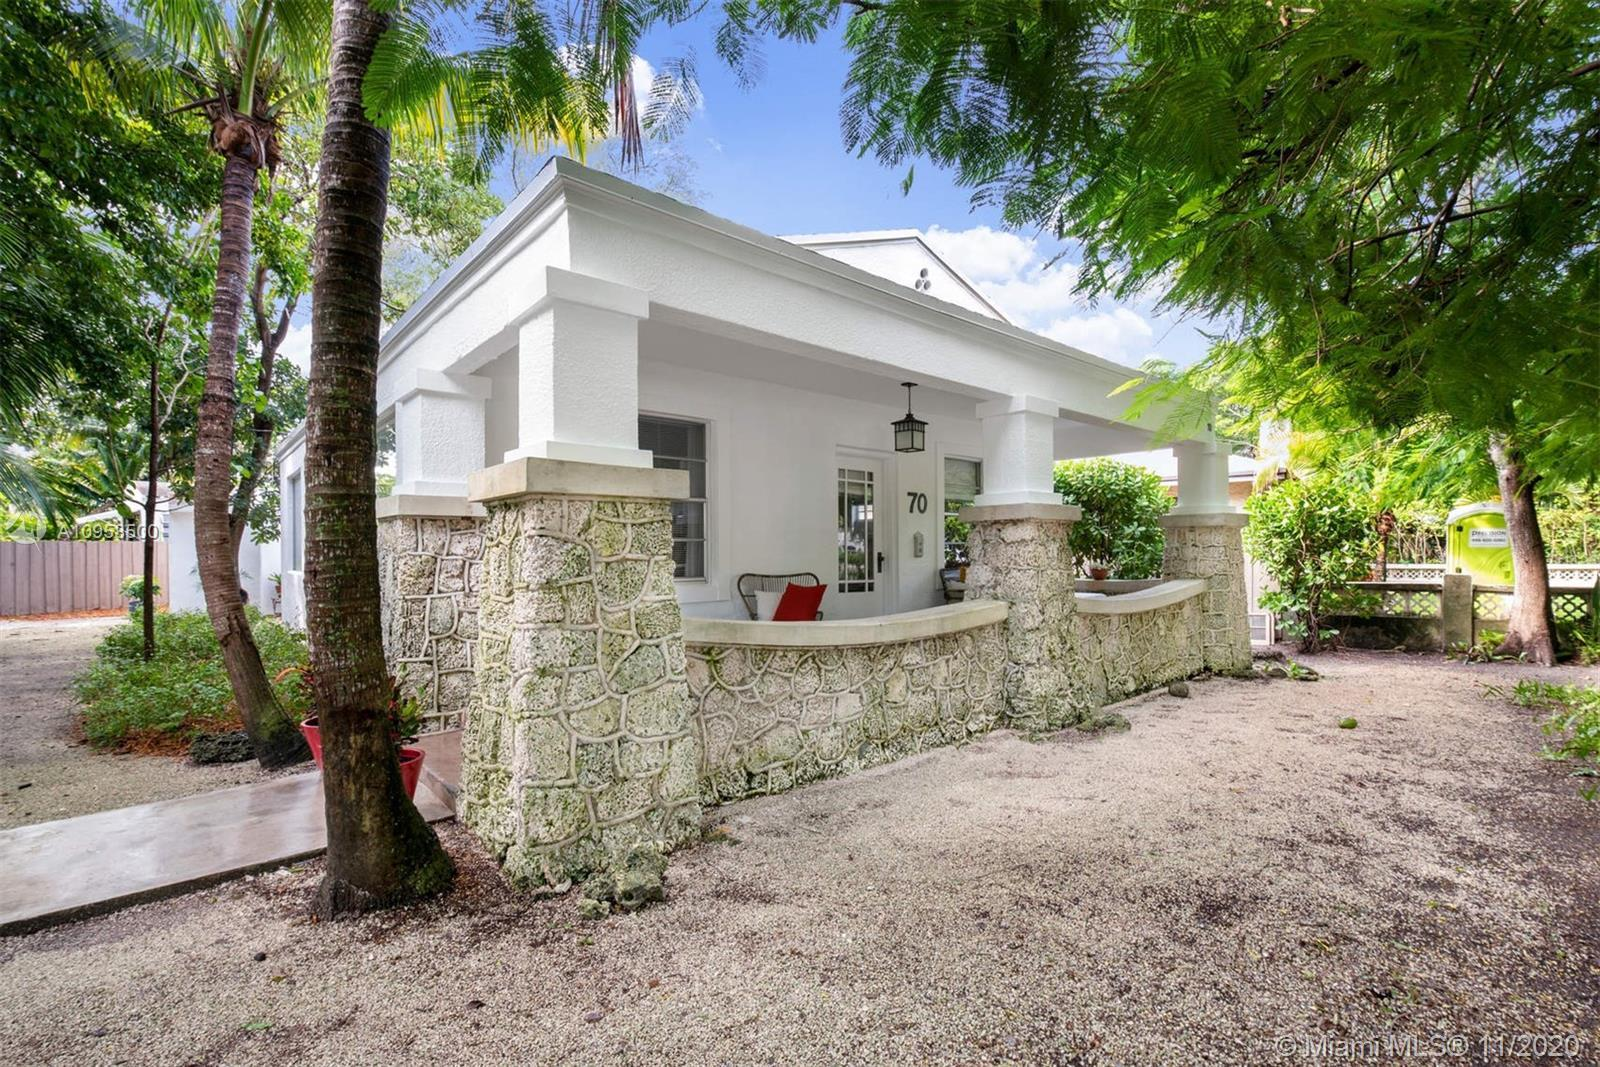 Adorable corner lot bungalow in the highly desired Design District neighborhood. The property featur